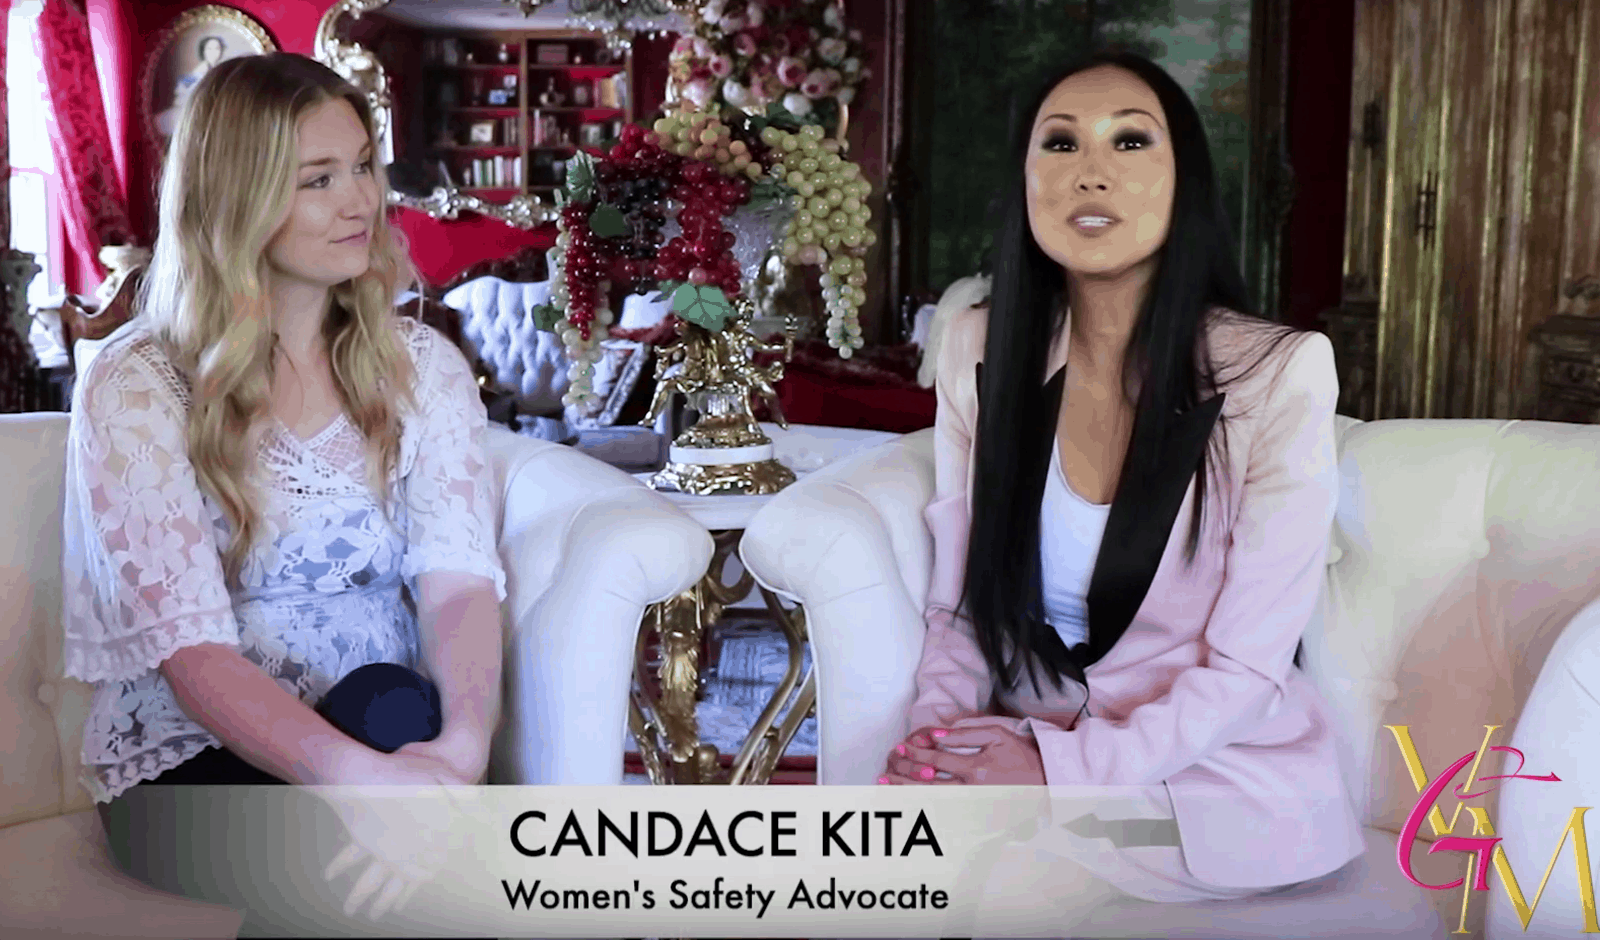 Safety-Expert-Candace-Kita-Gives-Advice-on-Staying-Alert-this-Summer-main-image